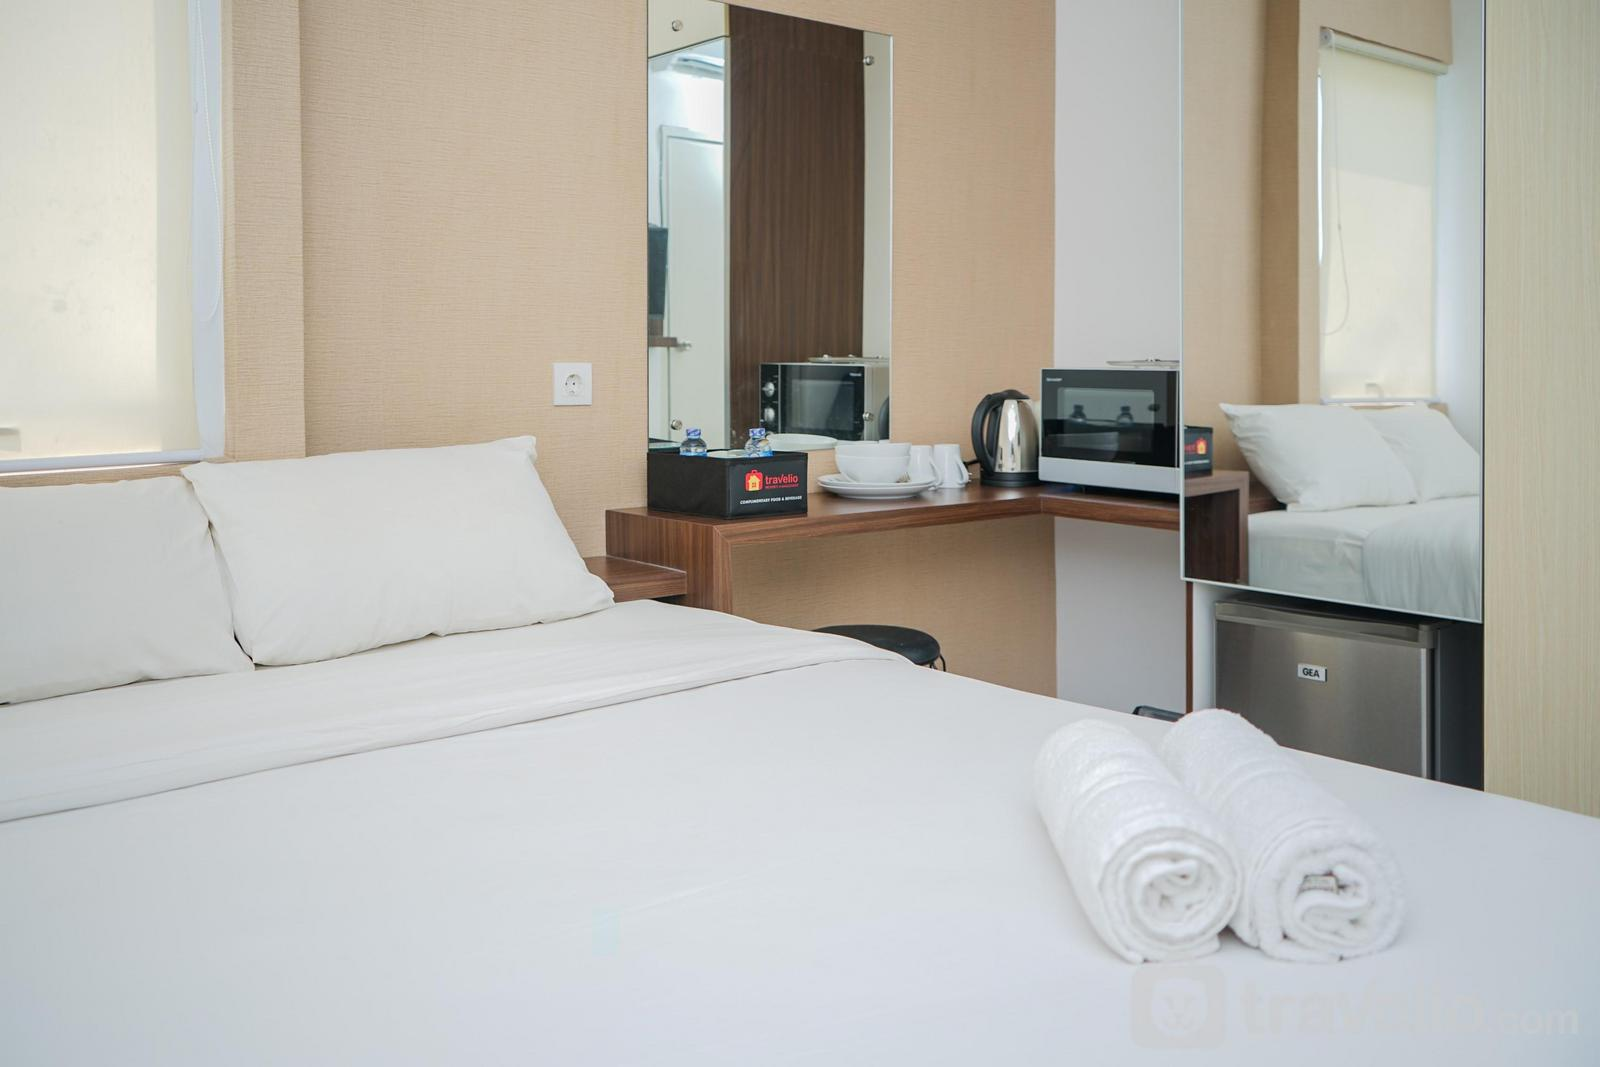 Apartemen Aeropolis Residence - Compact and Tidy Studio (No Kitchen) Apartment at Aeropolis Residence 3 By Travelio